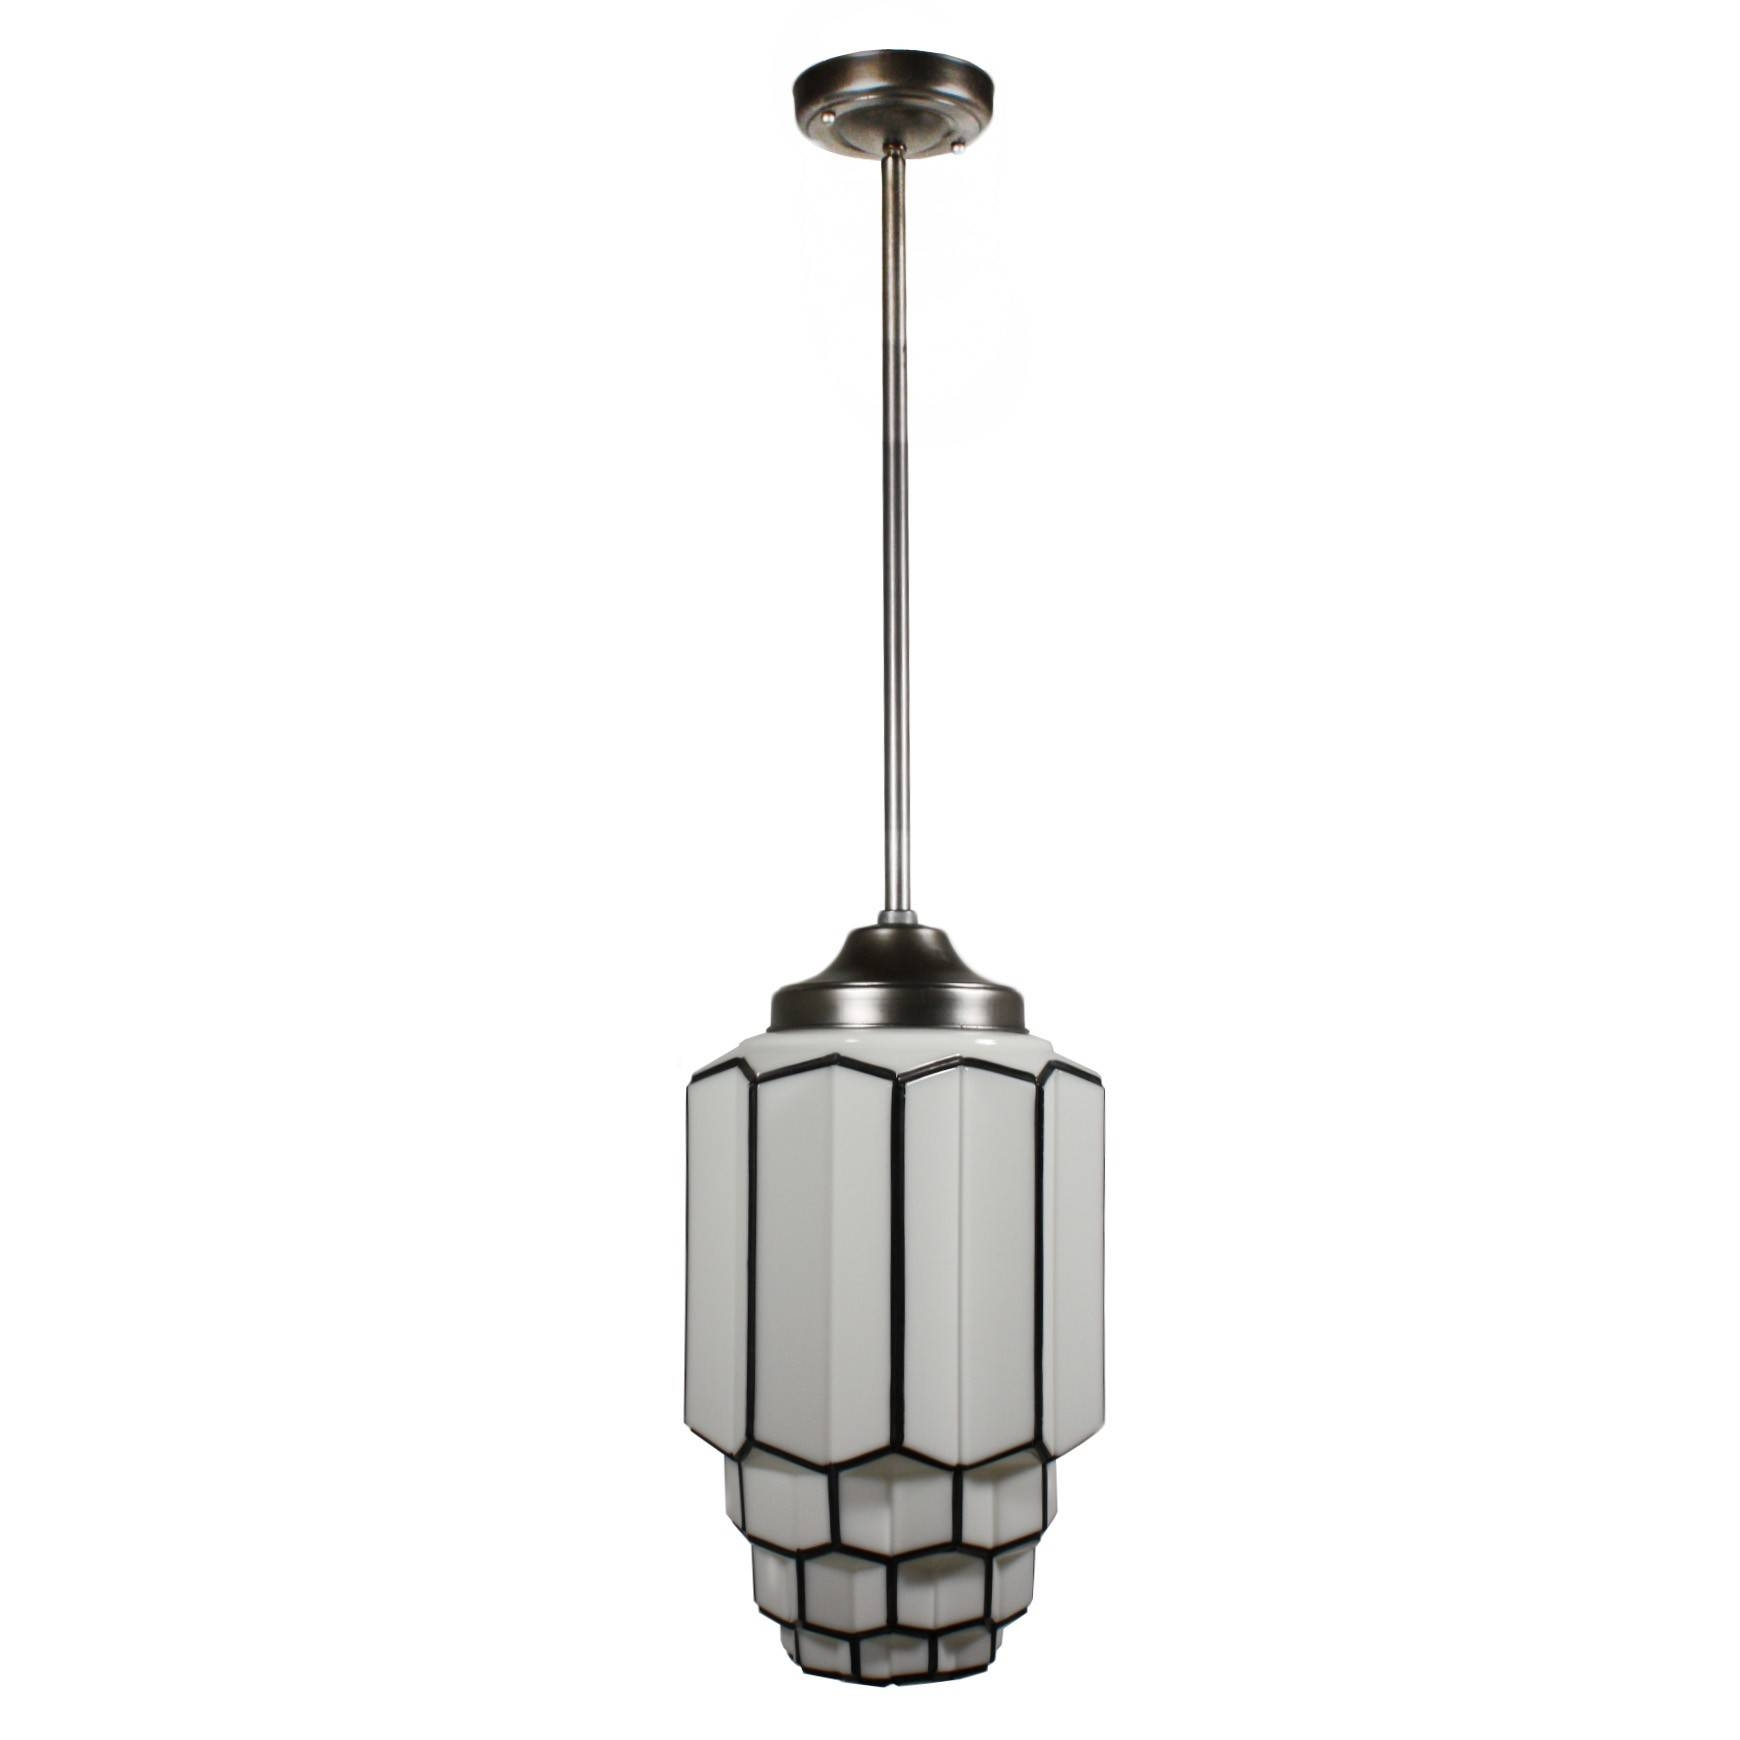 Antique Art Deco Pendant Light With Skyscraper Globe, C. 1930's inside Art Nouveau Pendant Lights (Image 3 of 15)